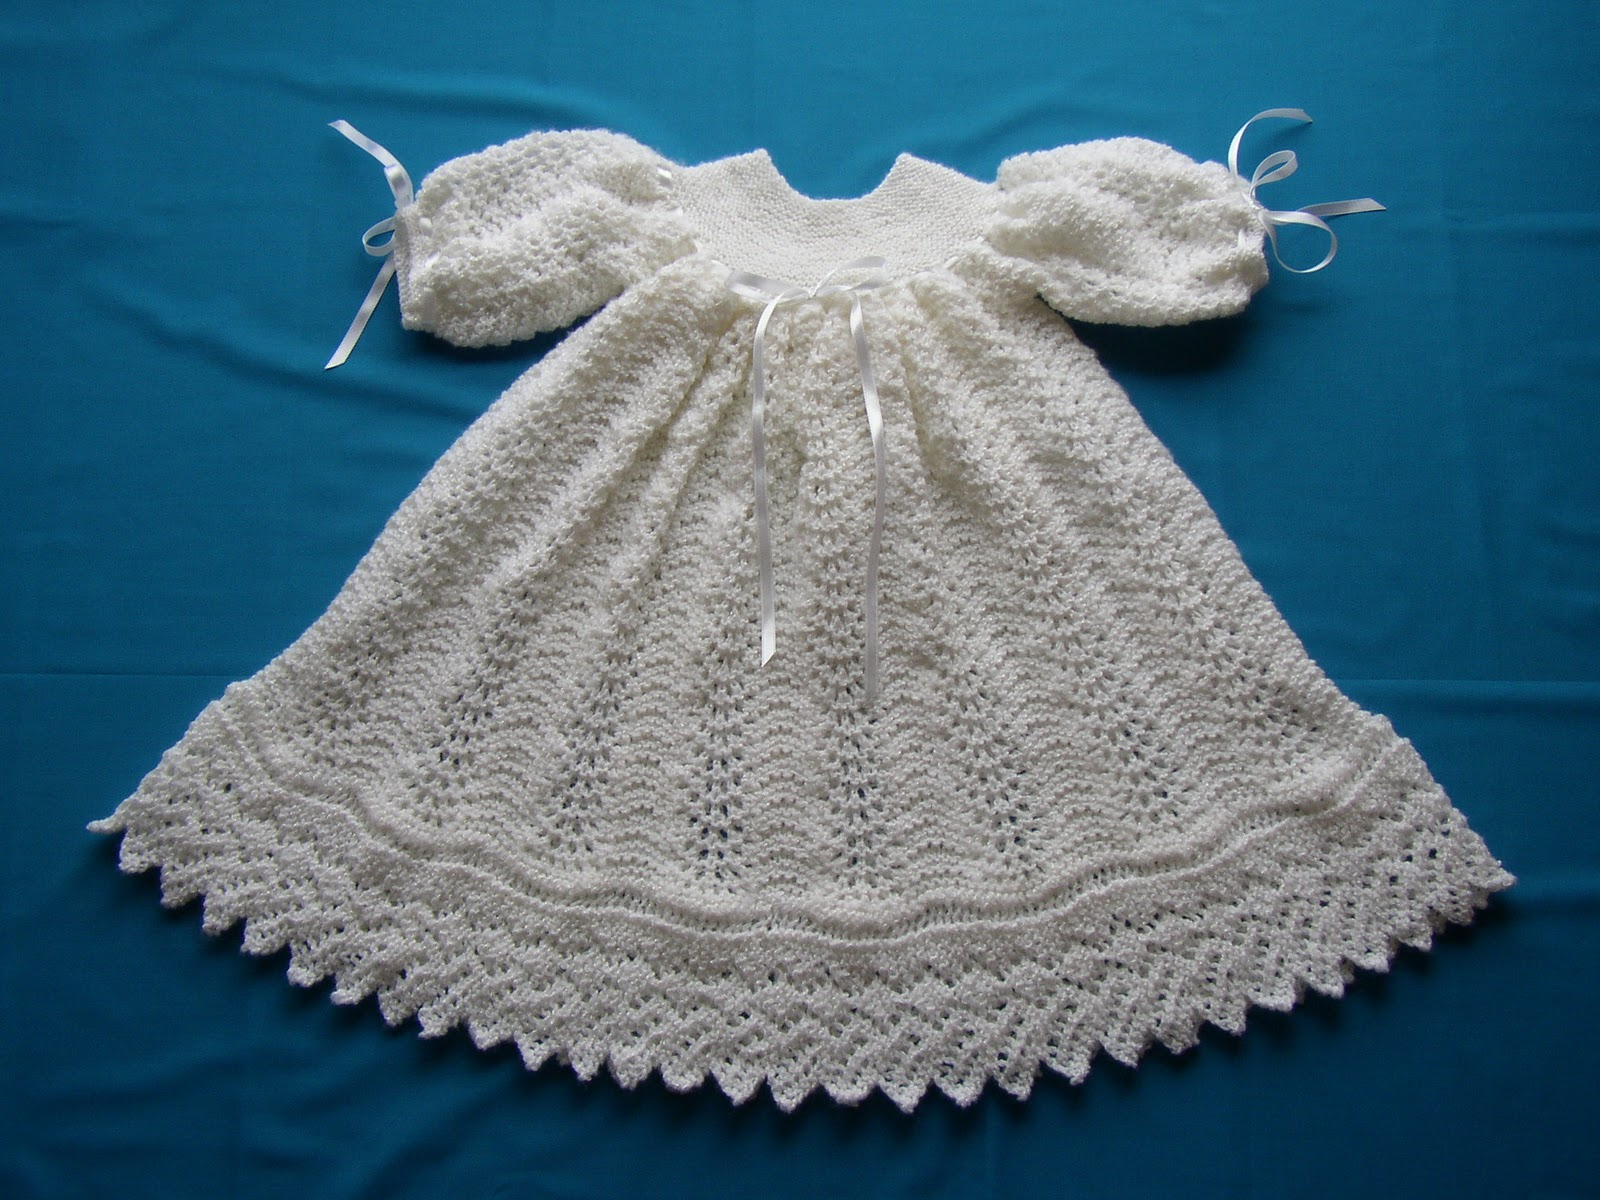 Nittineedles Ribbons And Lace Christening Gown